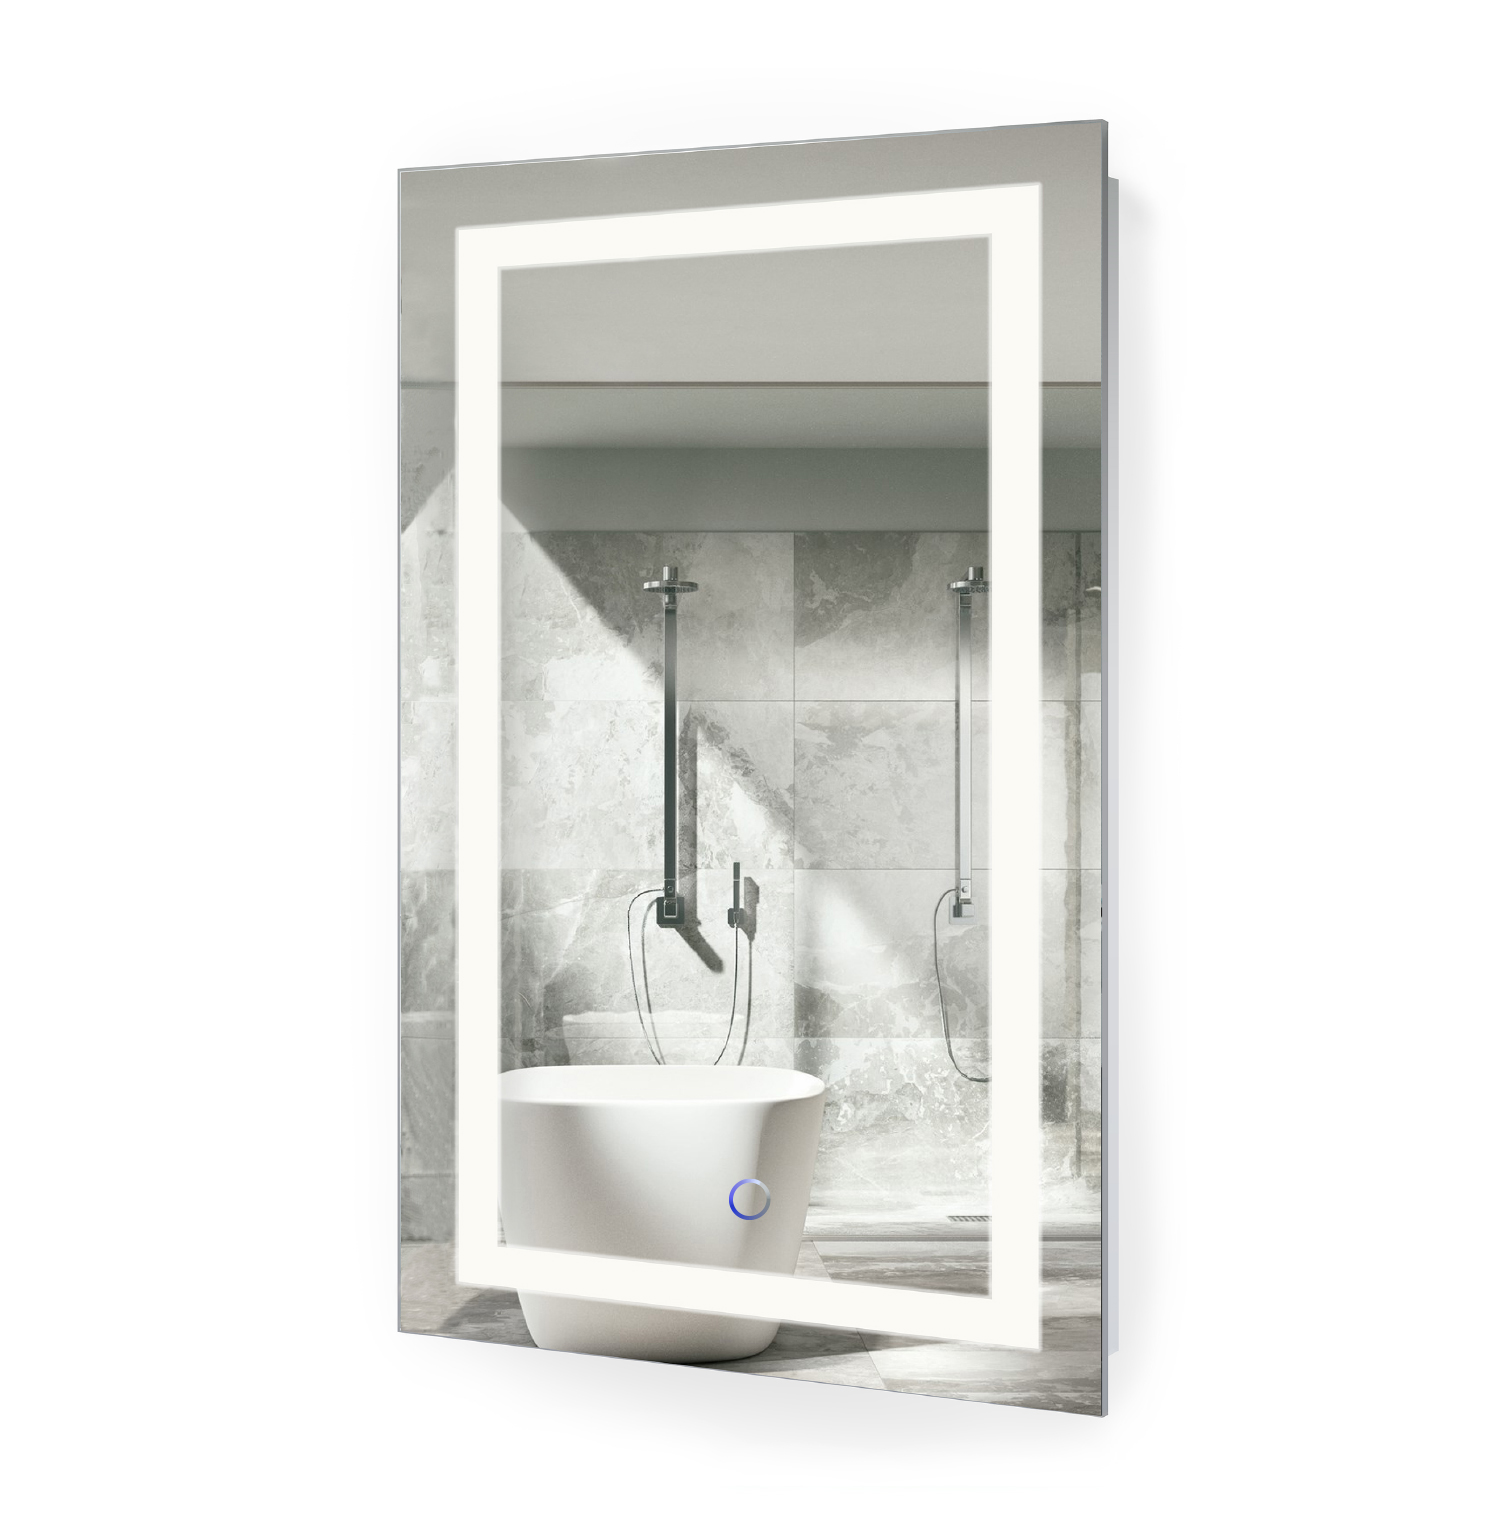 Icon 20″ x 32″ LED Bathroom Mirror With Dimmer & Defogger | Lighted Vanity Mirror